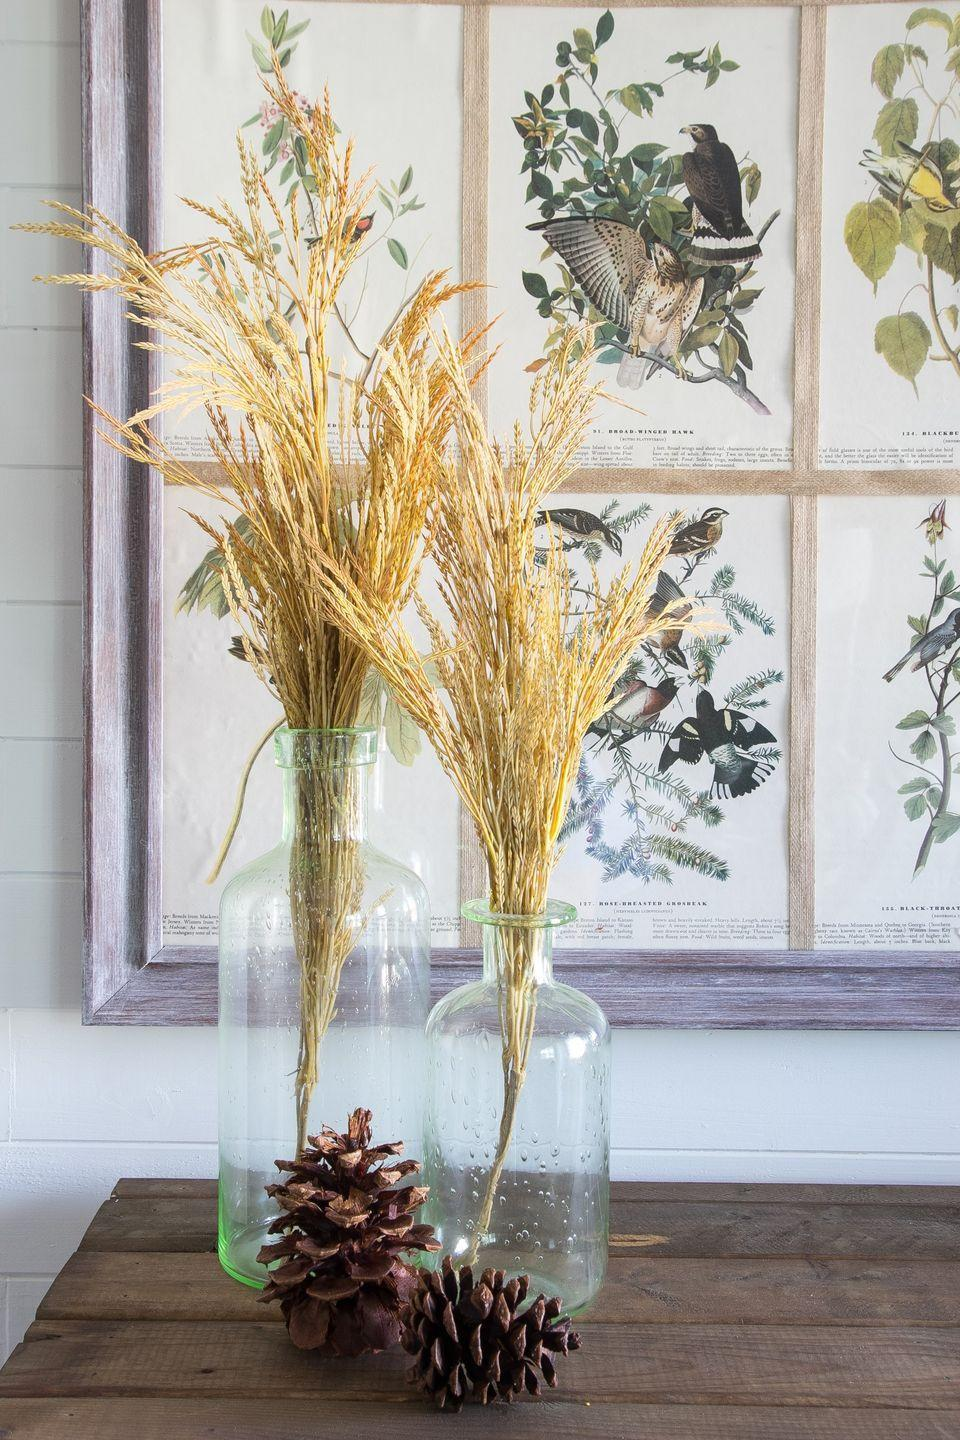 """<p>To decorate around art without distracting from it, swap bright blooms for simple wheat stalks, as in this <a href=""""https://www.elledecor.com/life-culture/entertaining/g2660/fall-centerpieces/"""" rel=""""nofollow noopener"""" target=""""_blank"""" data-ylk=""""slk:autumn decor"""" class=""""link rapid-noclick-resp"""">autumn decor</a> from <a href=""""http://www.blesserhouse.com/2015/09/2015-fall-home-tour-part-two.html"""" rel=""""nofollow noopener"""" target=""""_blank"""" data-ylk=""""slk:Bless'er House"""" class=""""link rapid-noclick-resp"""">Bless'er House</a>. </p>"""